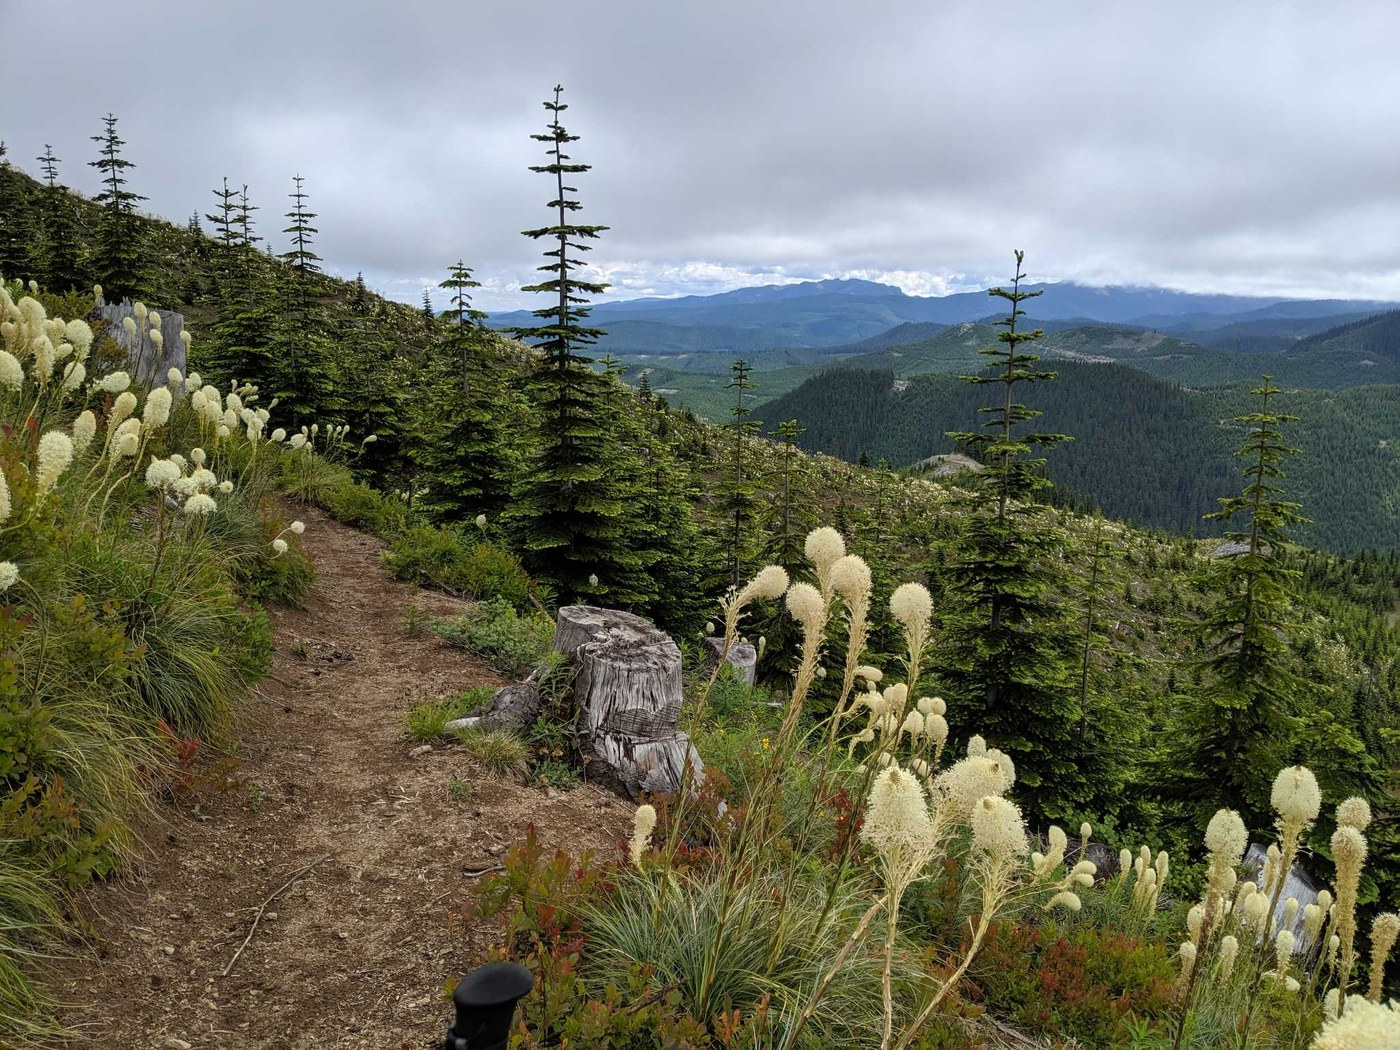 Bear Grass blooming along the trail overlooking the hills beyond.